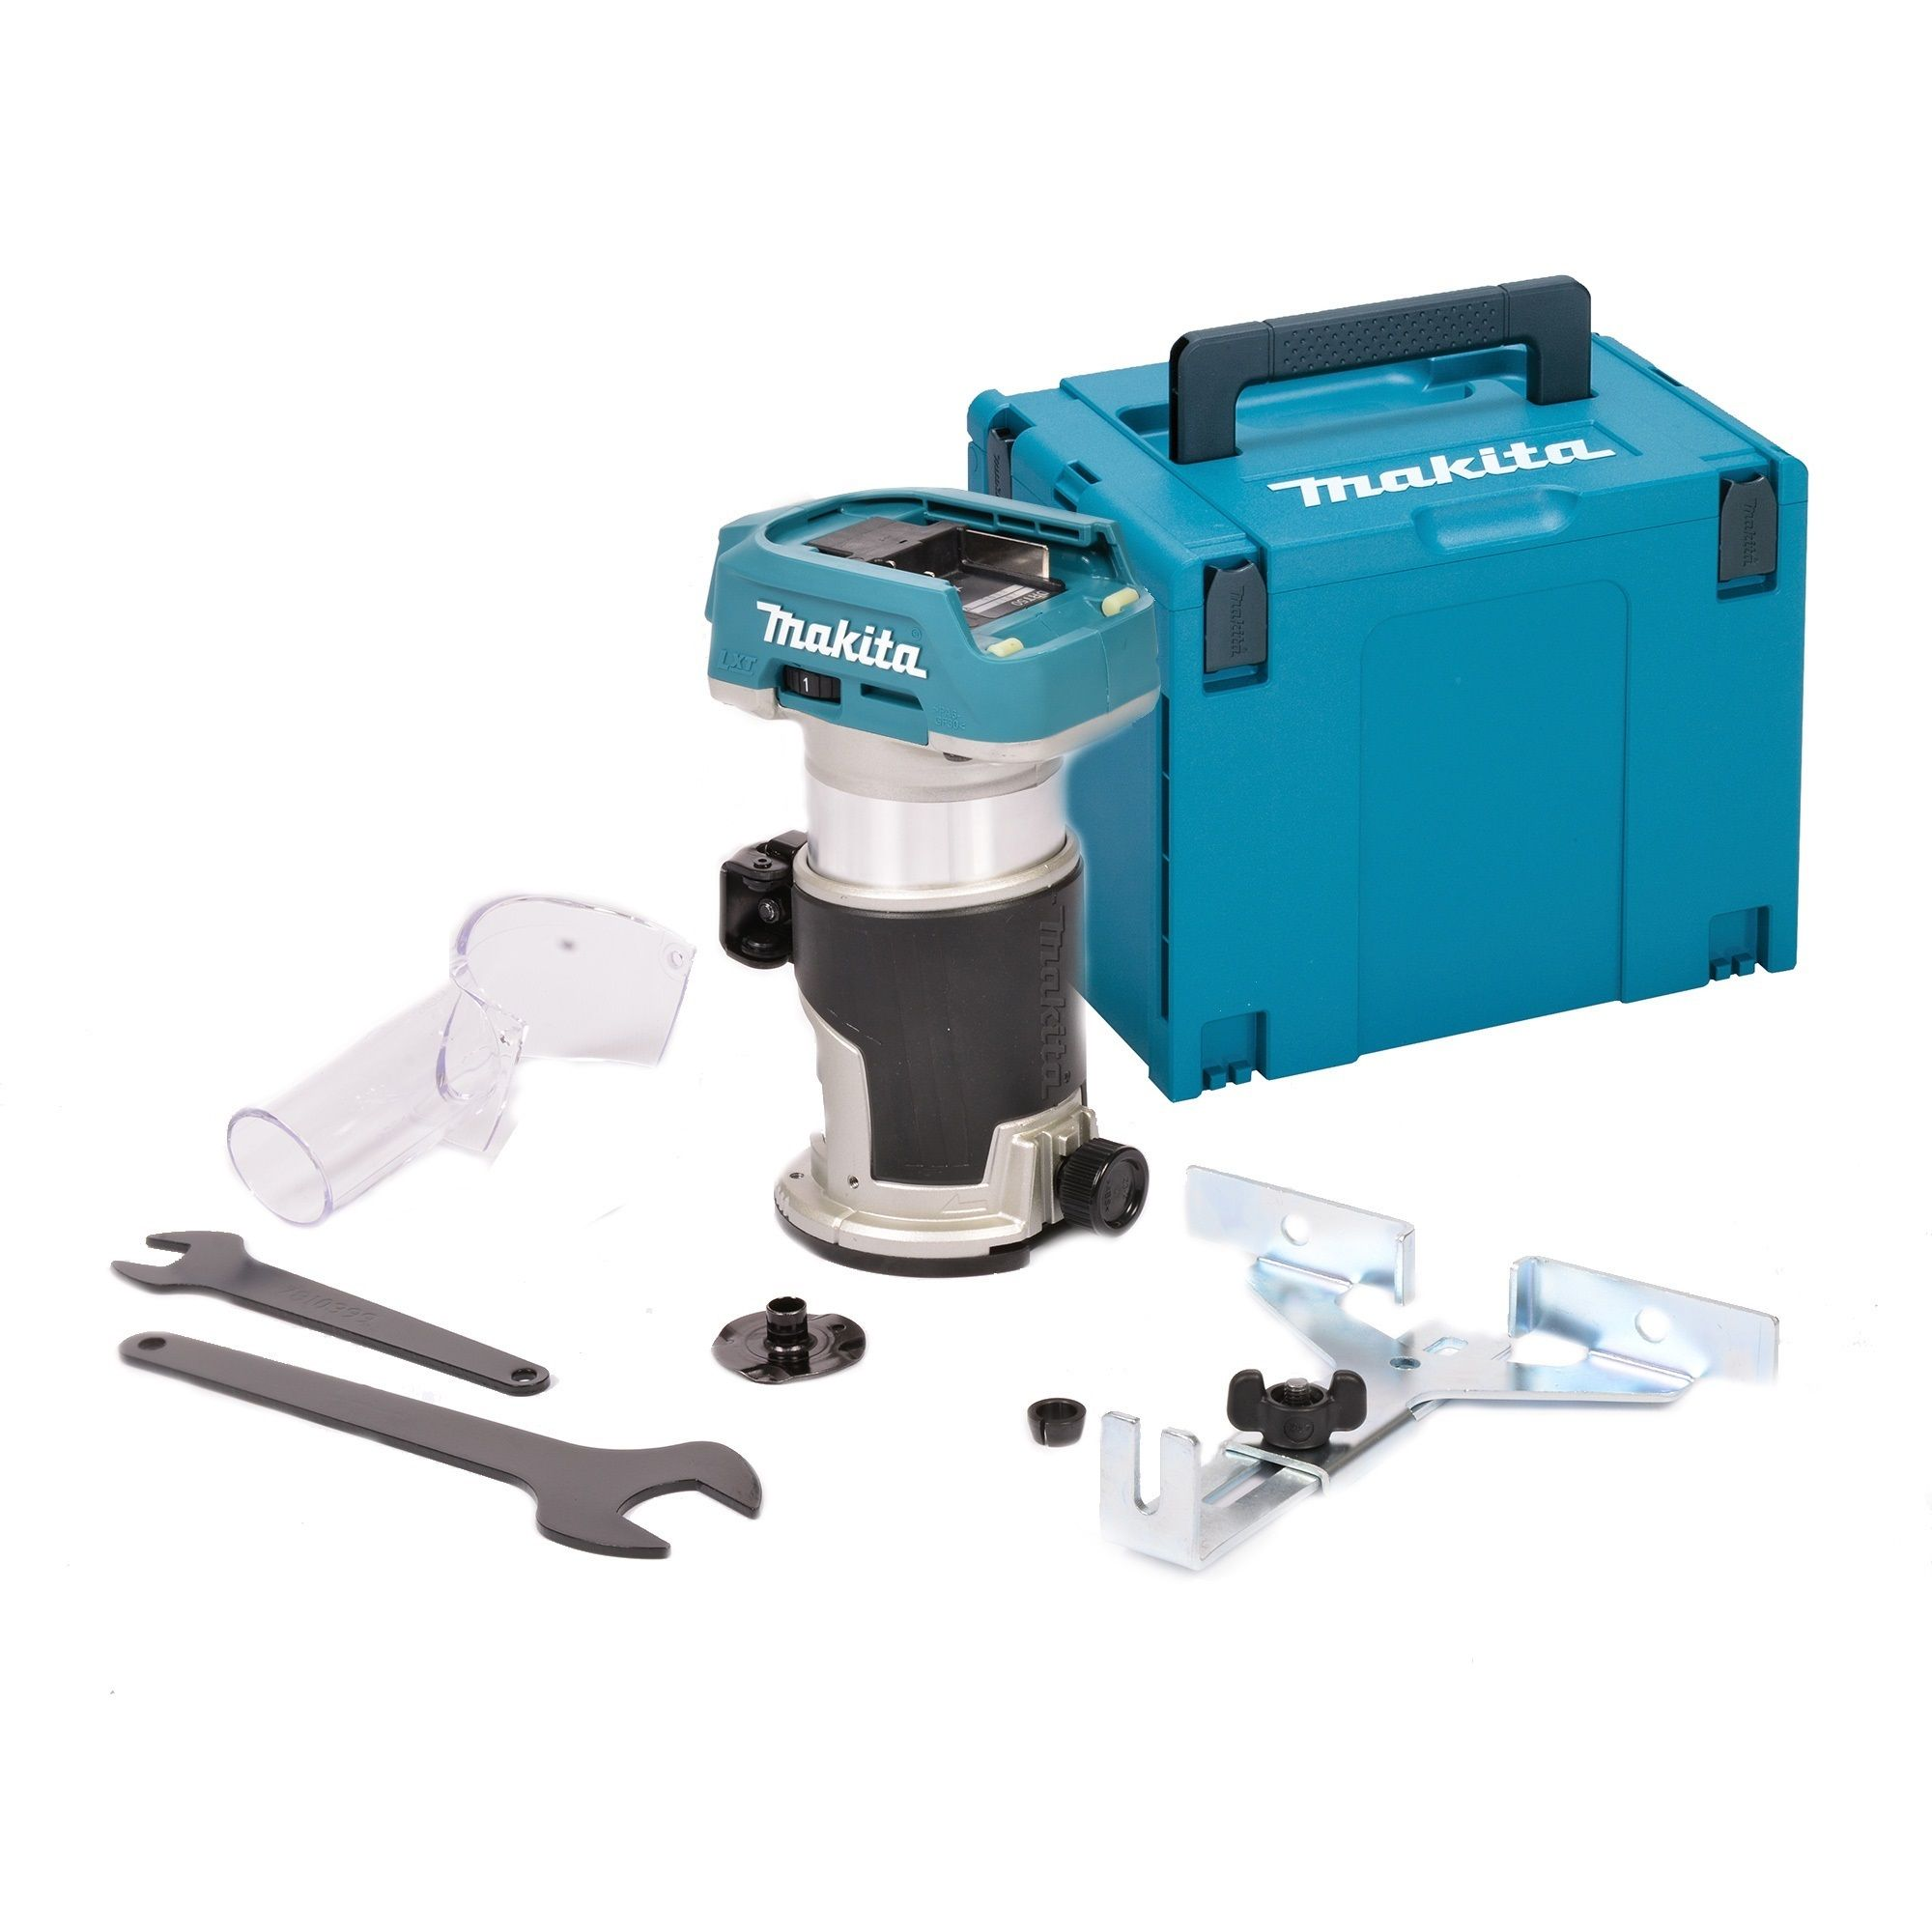 Makita Freesmachine Makita Drt50zj 18v Li Ion Accu Bovenfrees Kantenfrees Trimmer Body In Mbox